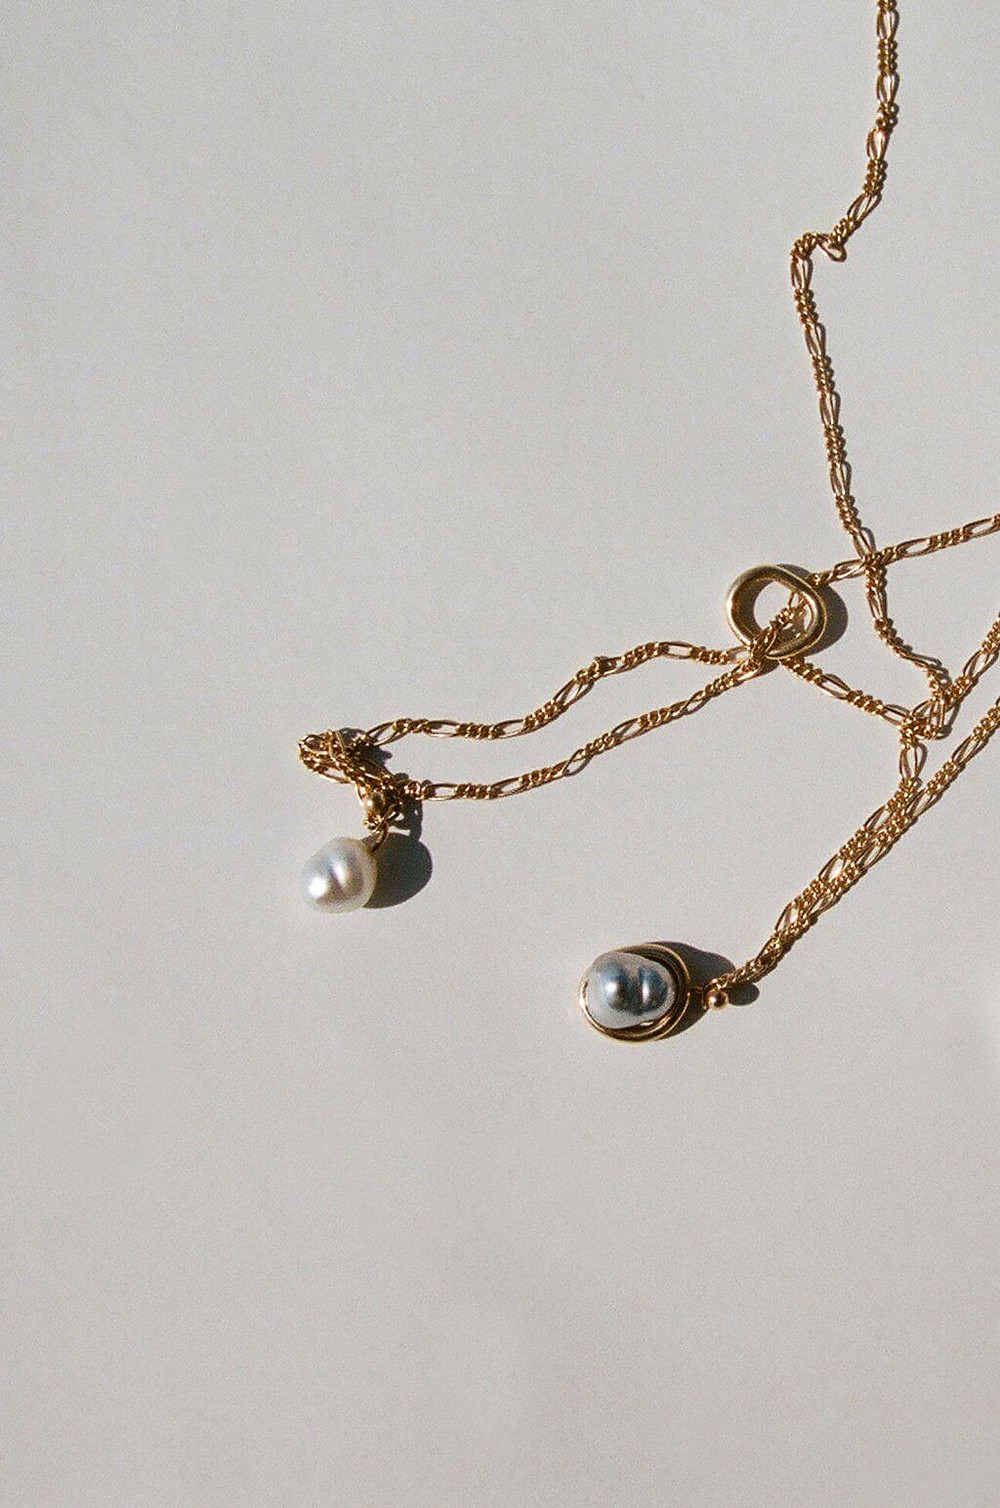 Necklace with fine gold chain and a pearl attached as a charm